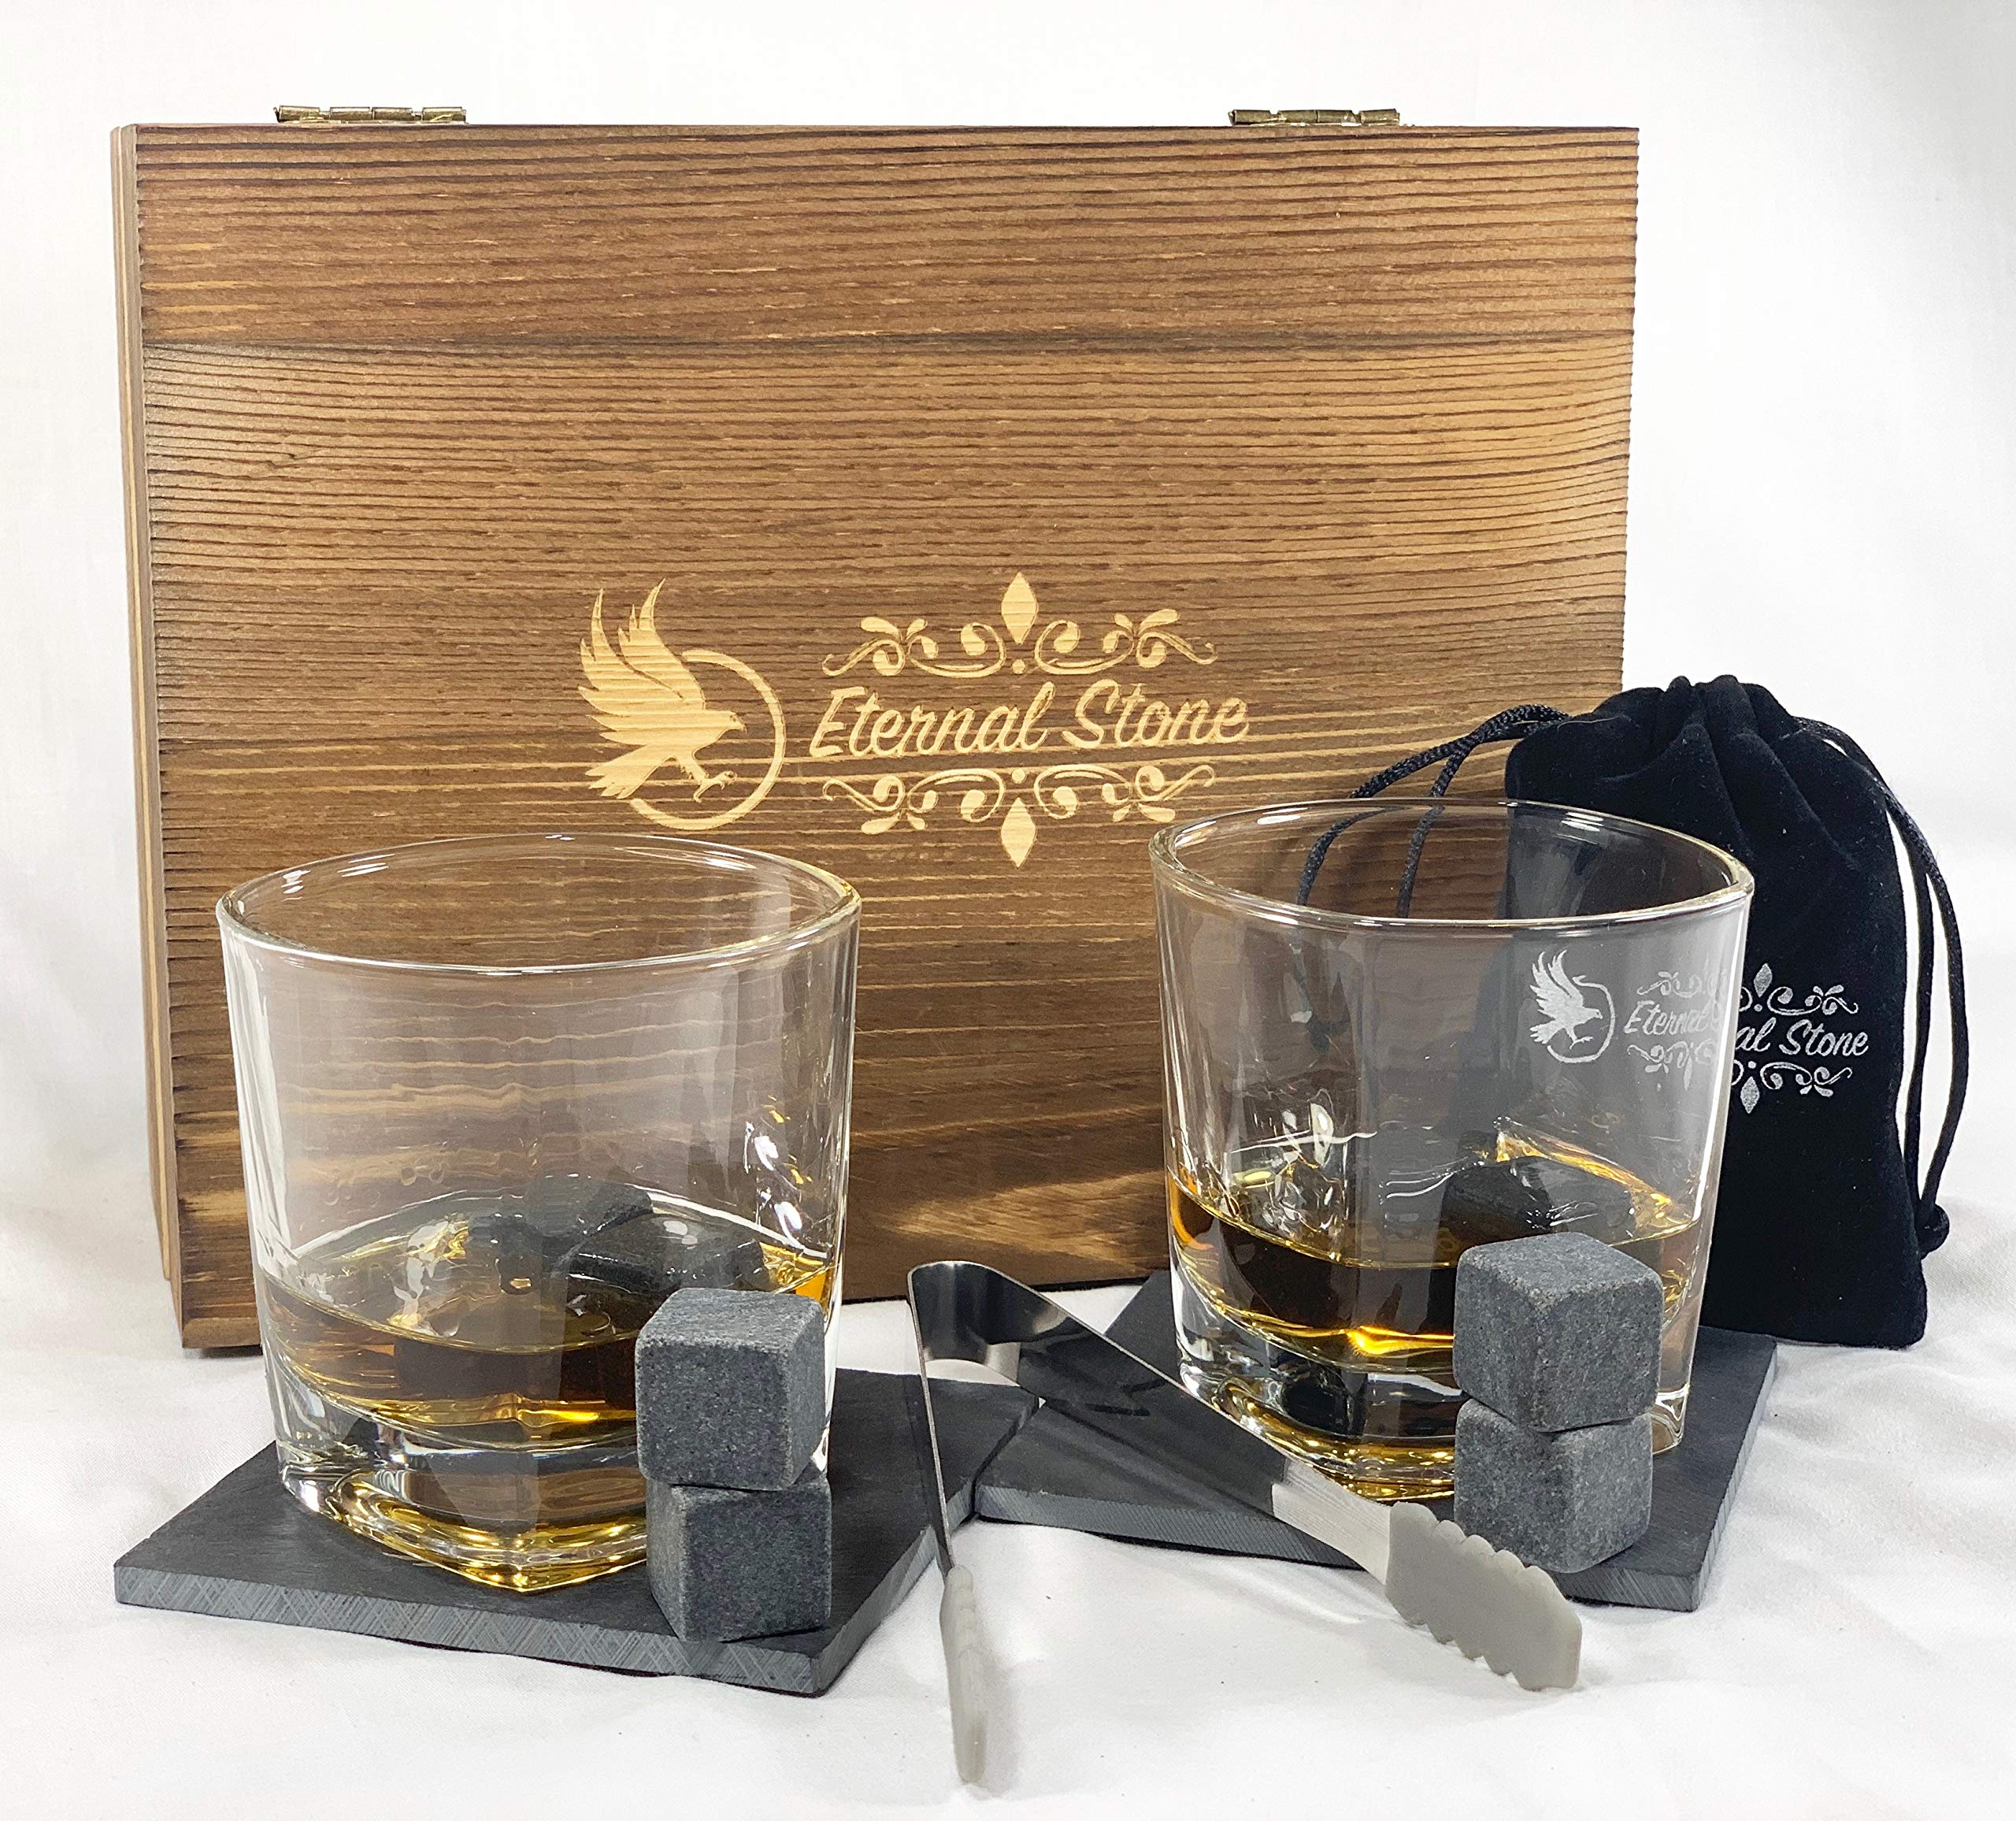 Whiskey Stones Gift Set- 8 Granite Chilling Rocks, 2 Crystal Scotch Whiskey Glasses, Slate Table Coasters, Tongs, Velvet Bag in Handcrafted Wooden Box   Gift for Husband, Dad, Birthday or Anniversary